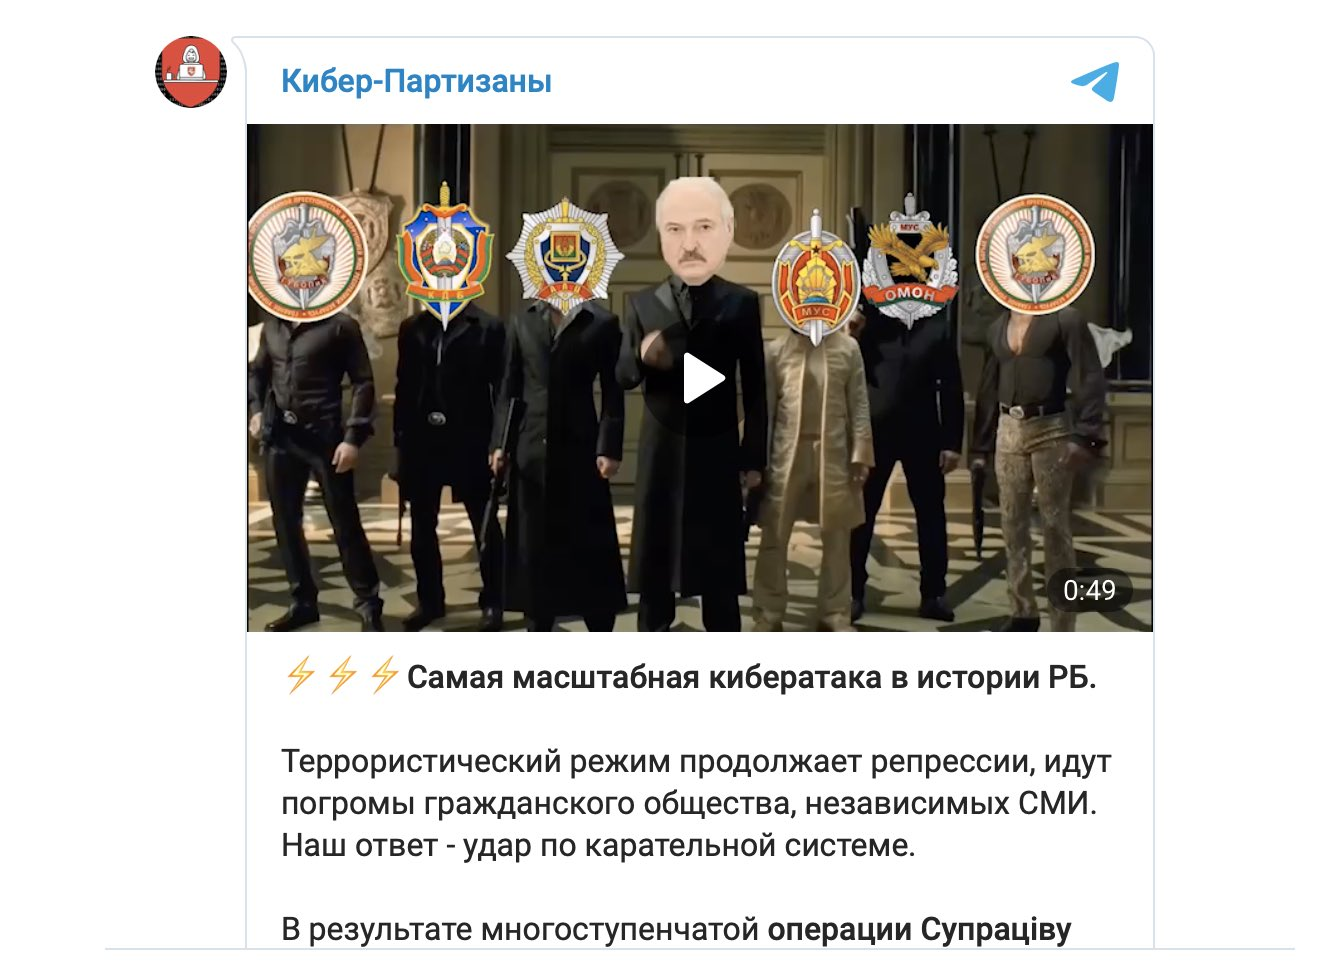 """Image: Telegram post by Cyber Partisans claiming to have launched """"the largest-scale cyberattack in the history of the Republic of Belarus,"""" stating that the attack was a strike at the """"terrorist regime"""" in response to its continued repression against civil society and the independent media."""